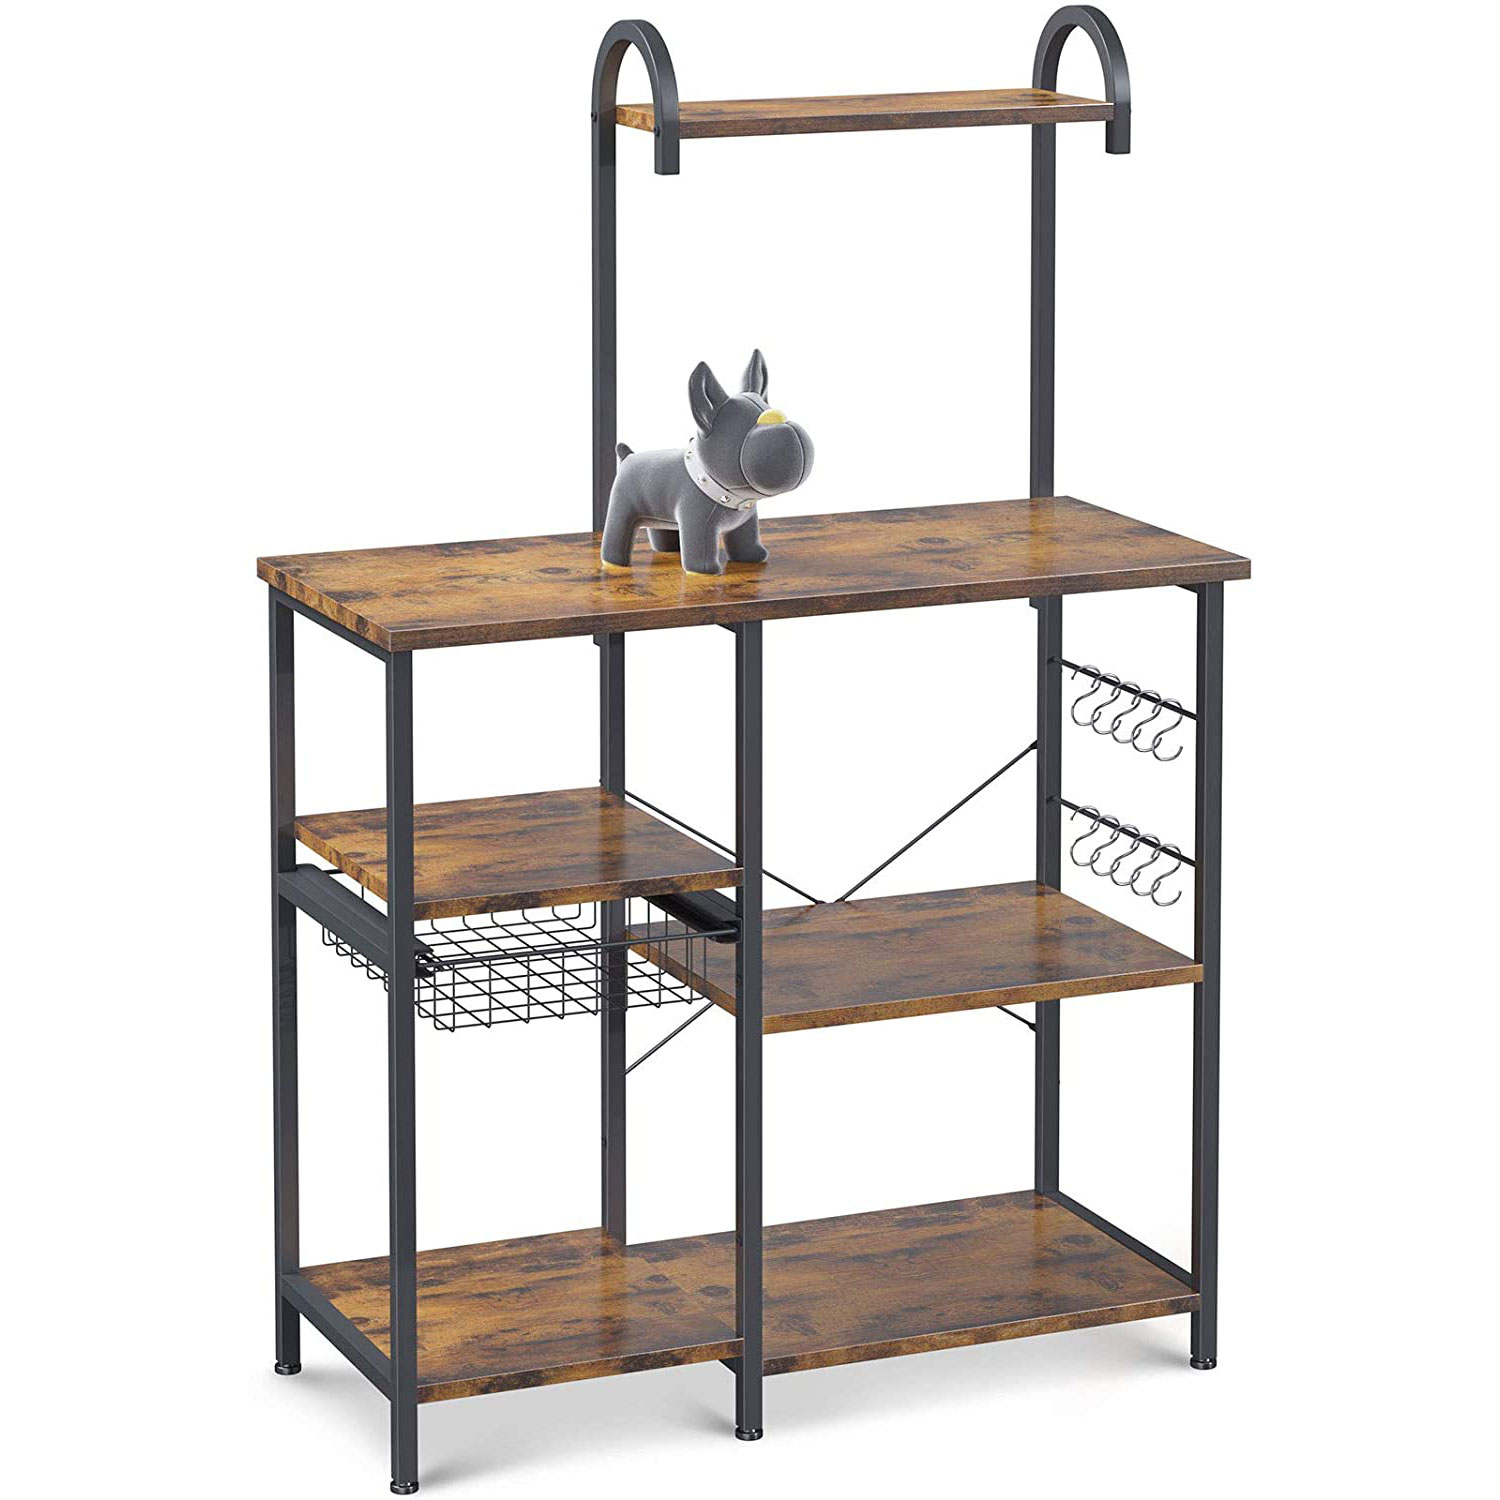 ODK Kitchen Bakers Rack Utility Storage Shelf Microwave Oven Stand 3-Tier